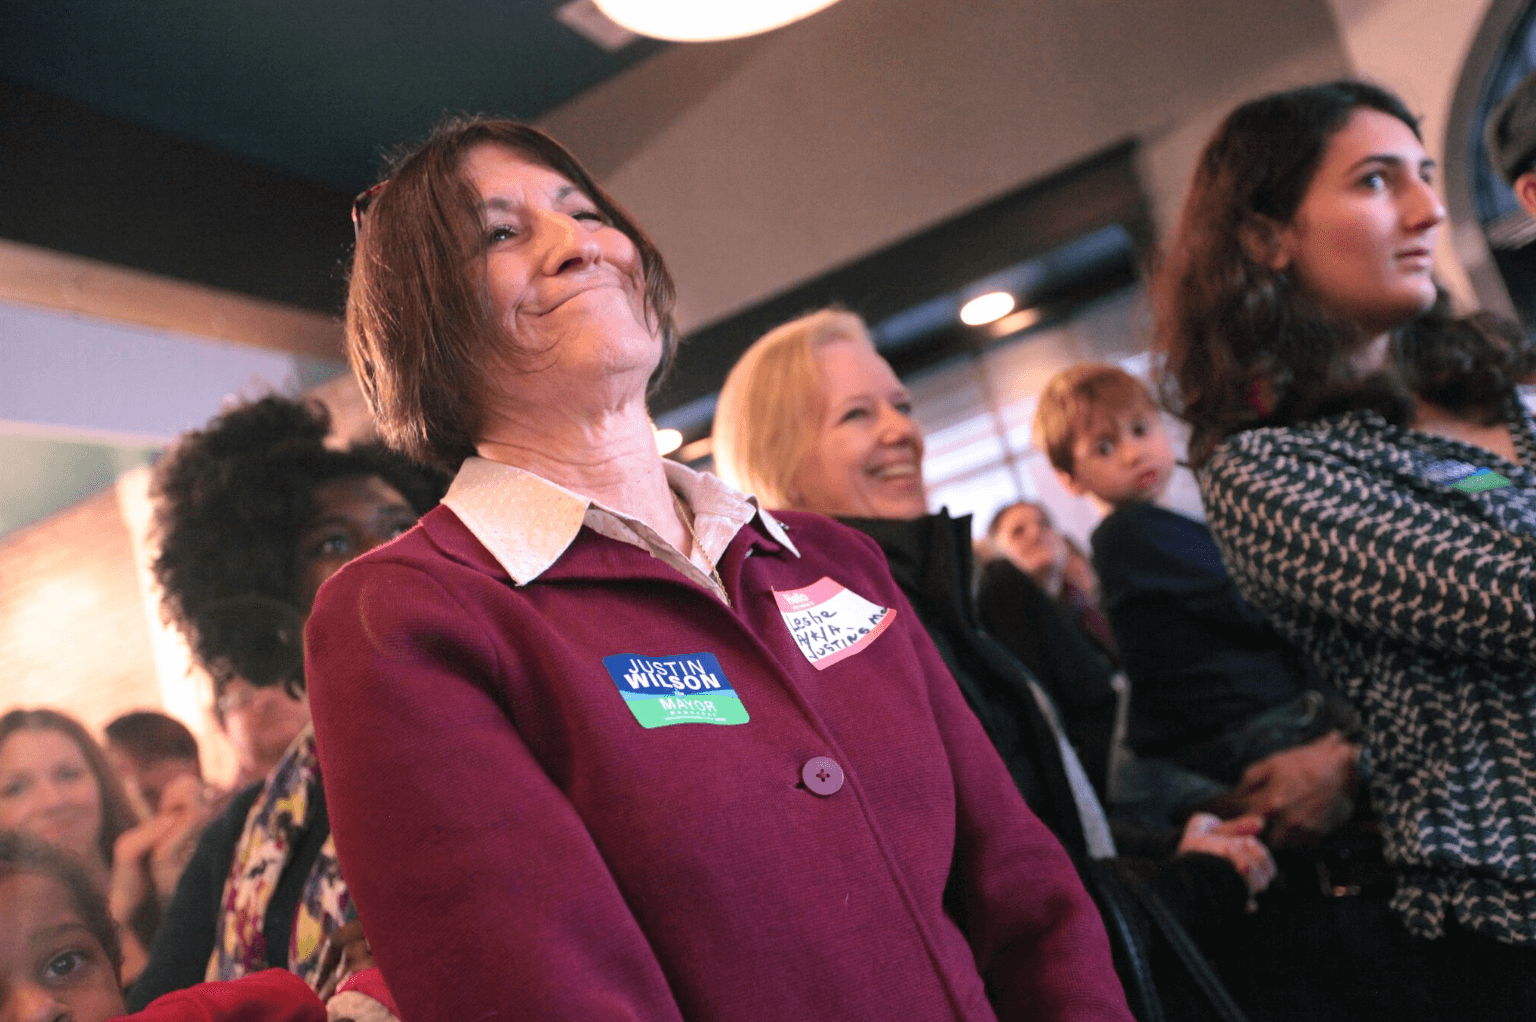 Justin Wilson's mother looks on at campaign kickoff.